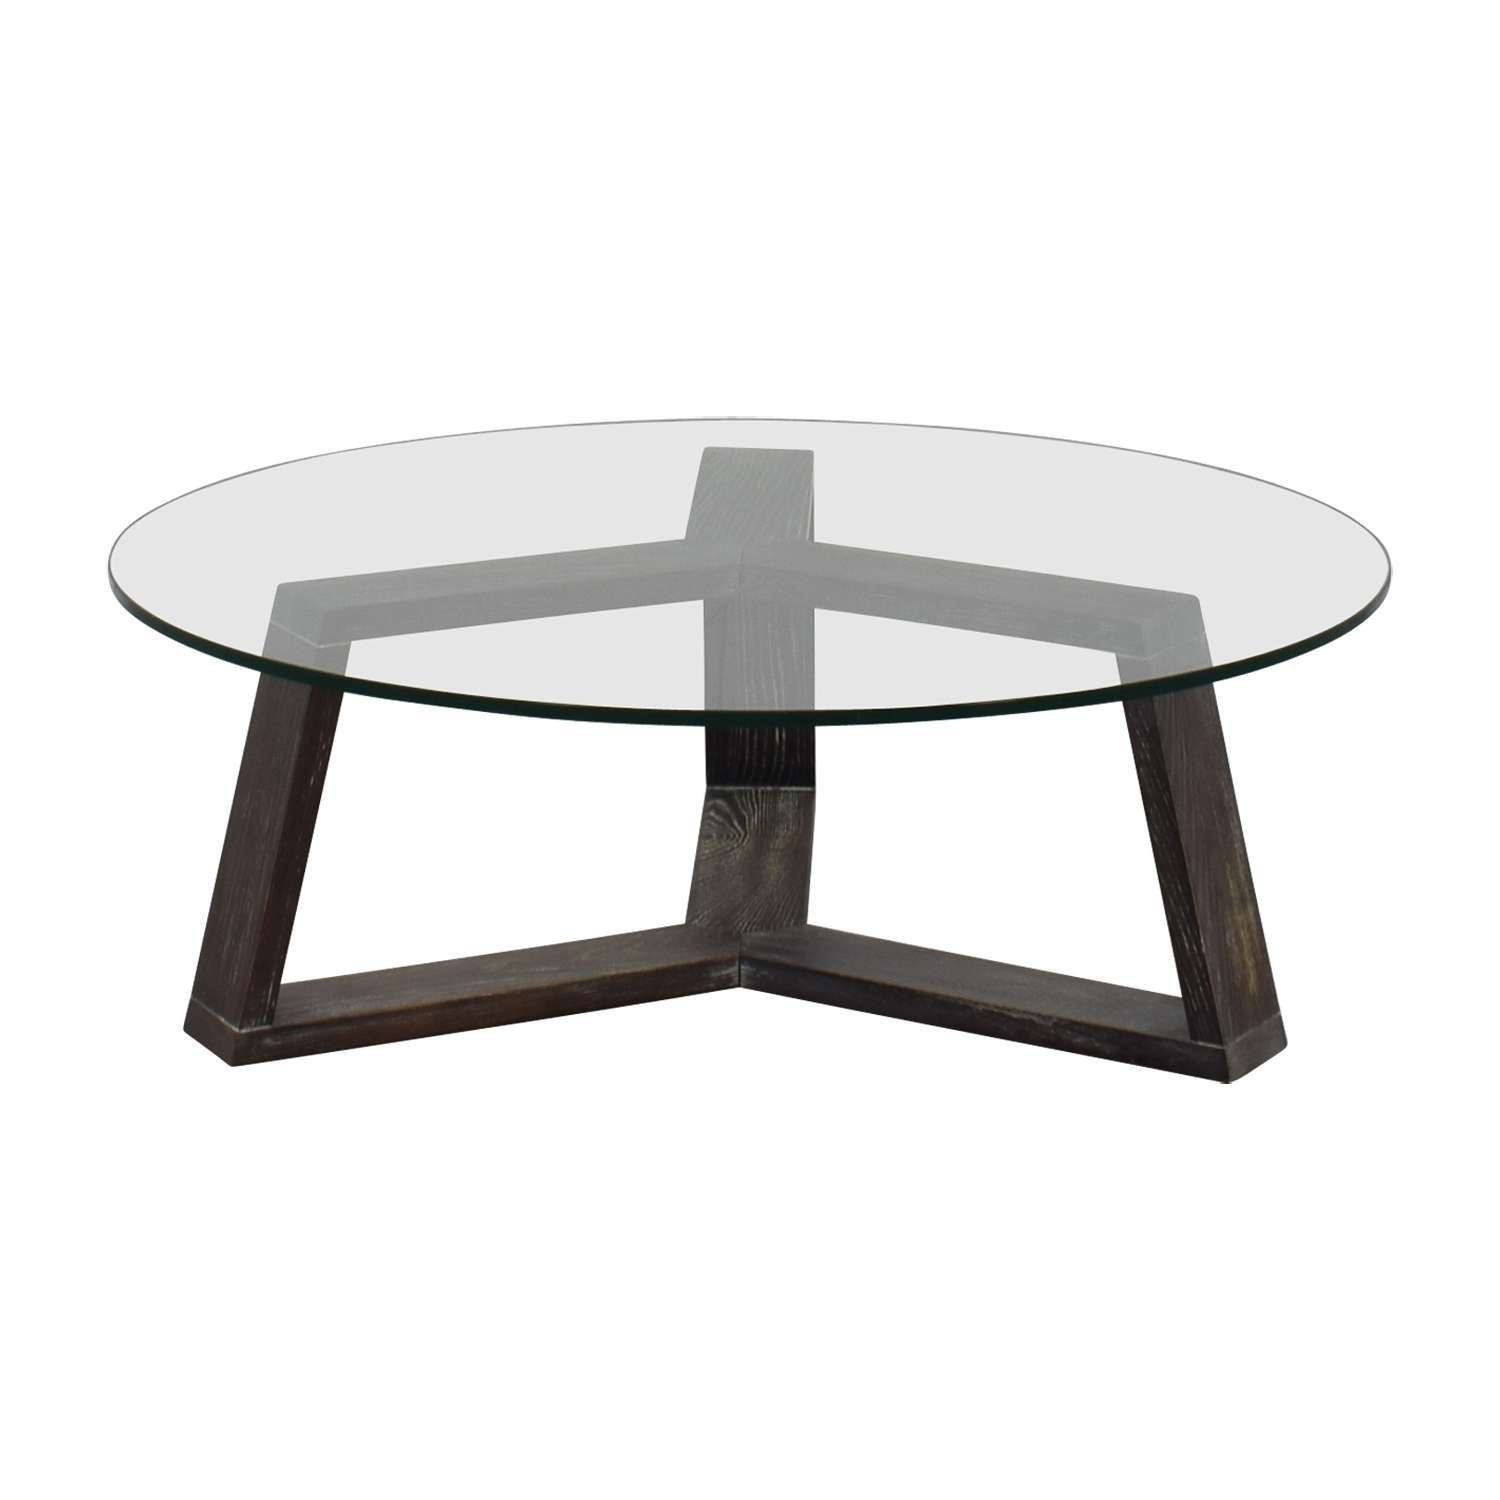 [%2017 Round Glass And Wood Coffee Tables Regarding 44% Off – Cb2 Cb2 Round Glass And Wood Coffee Table / Tables|44% Off – Cb2 Cb2 Round Glass And Wood Coffee Table / Tables Within Most Recently Released Round Glass And Wood Coffee Tables%] (View 1 of 20)